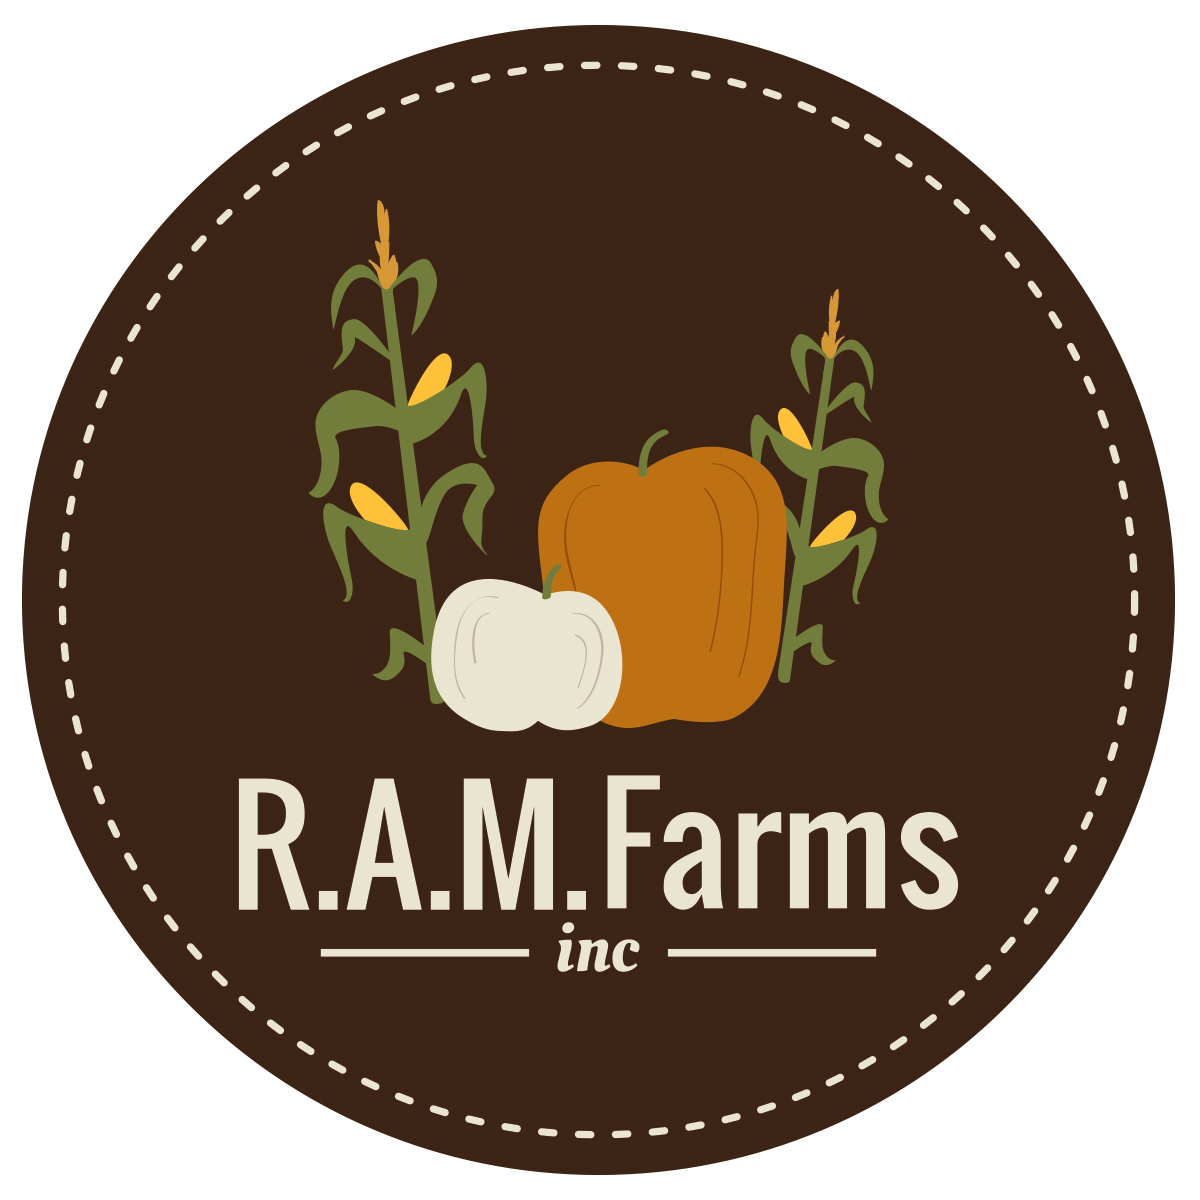 R.A.M. Farms Inc. Pumpkin Patch and Corn Maze